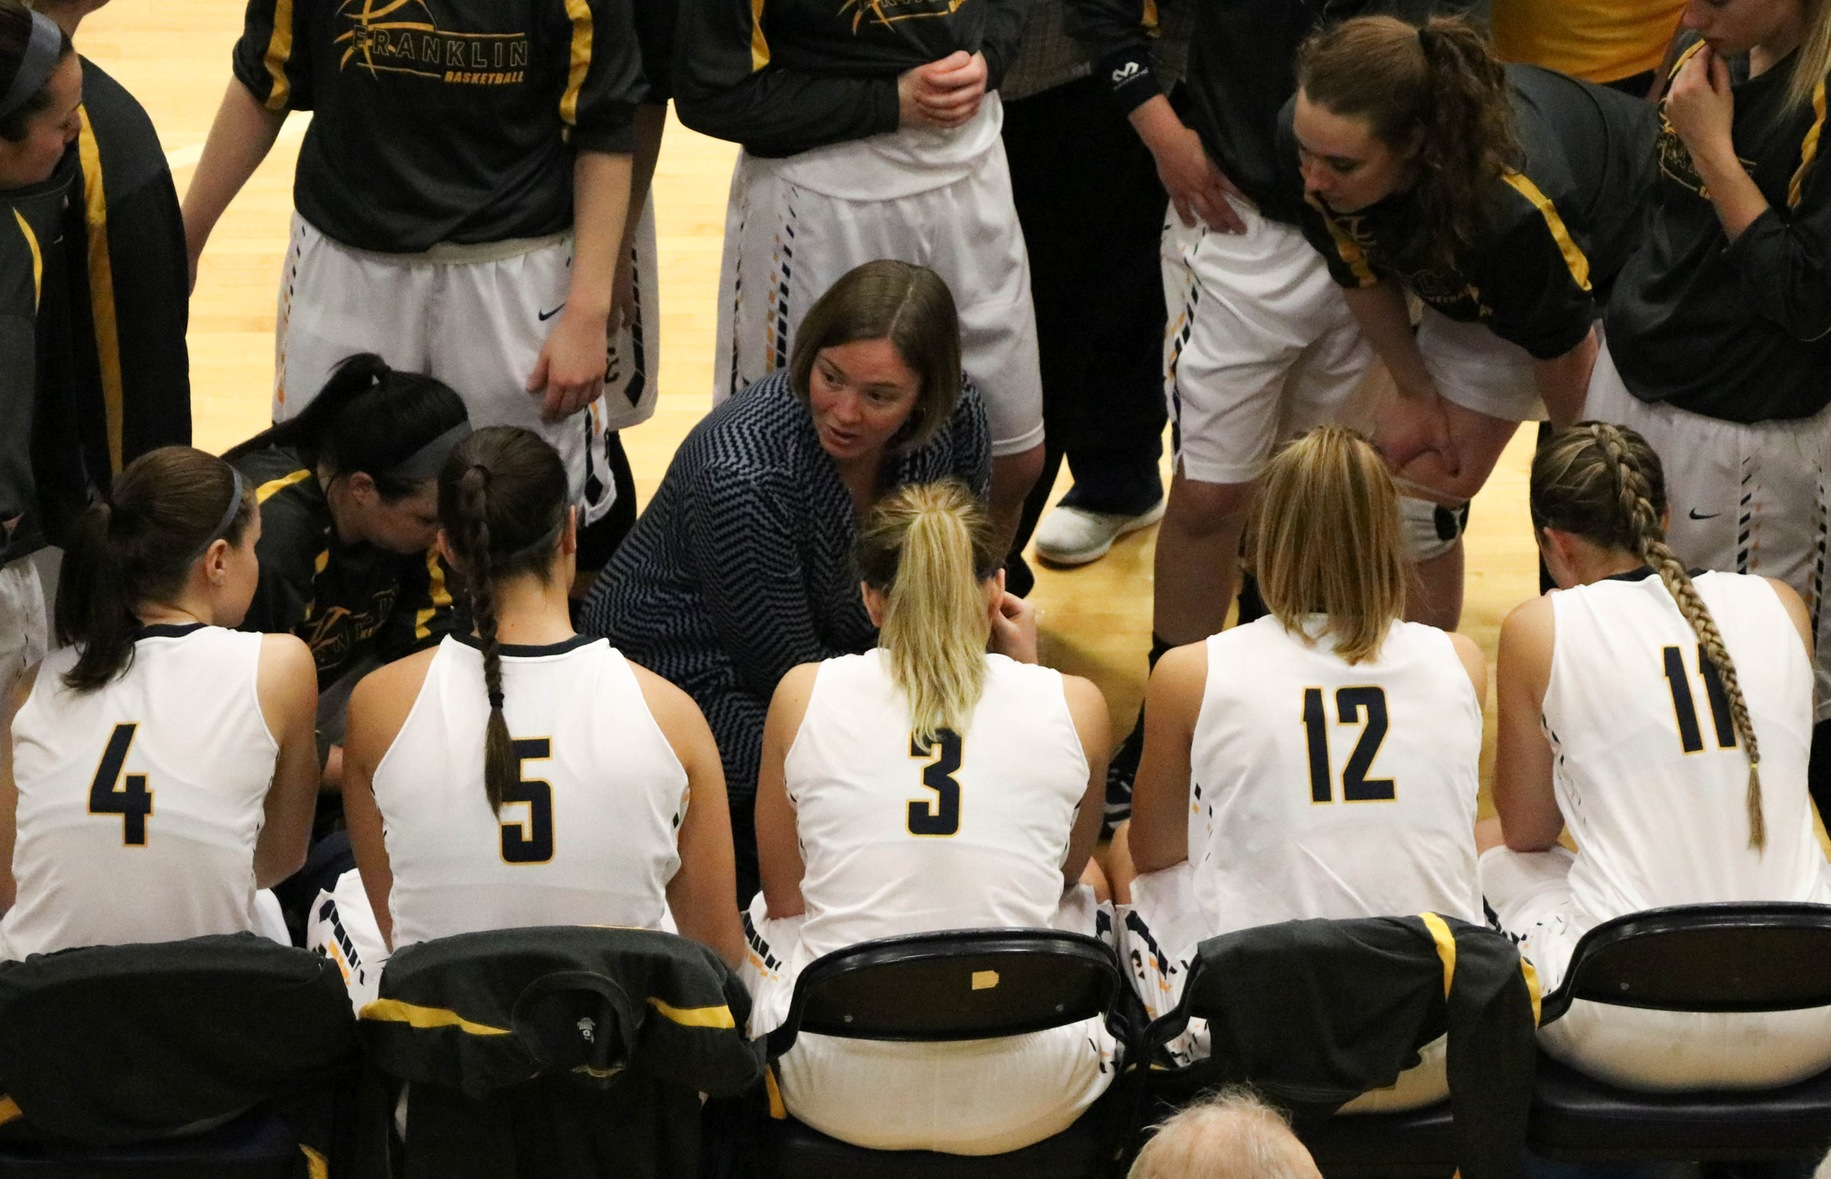 Women's Basketball Team Bidding for Fourth Straight Win